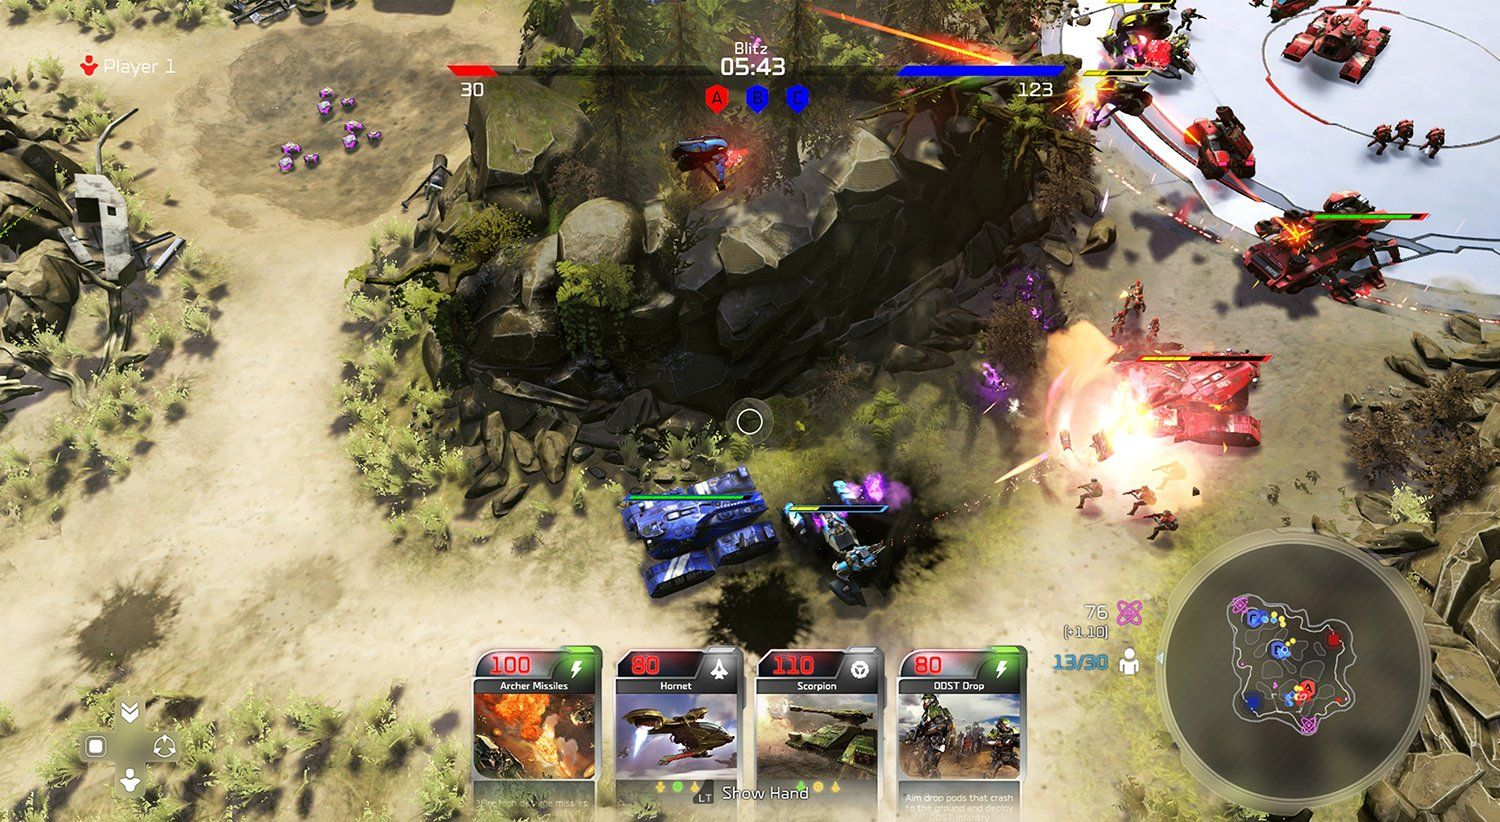 Halo Wars 2: Complete Edition surfaces for Xbox One and Windows 10